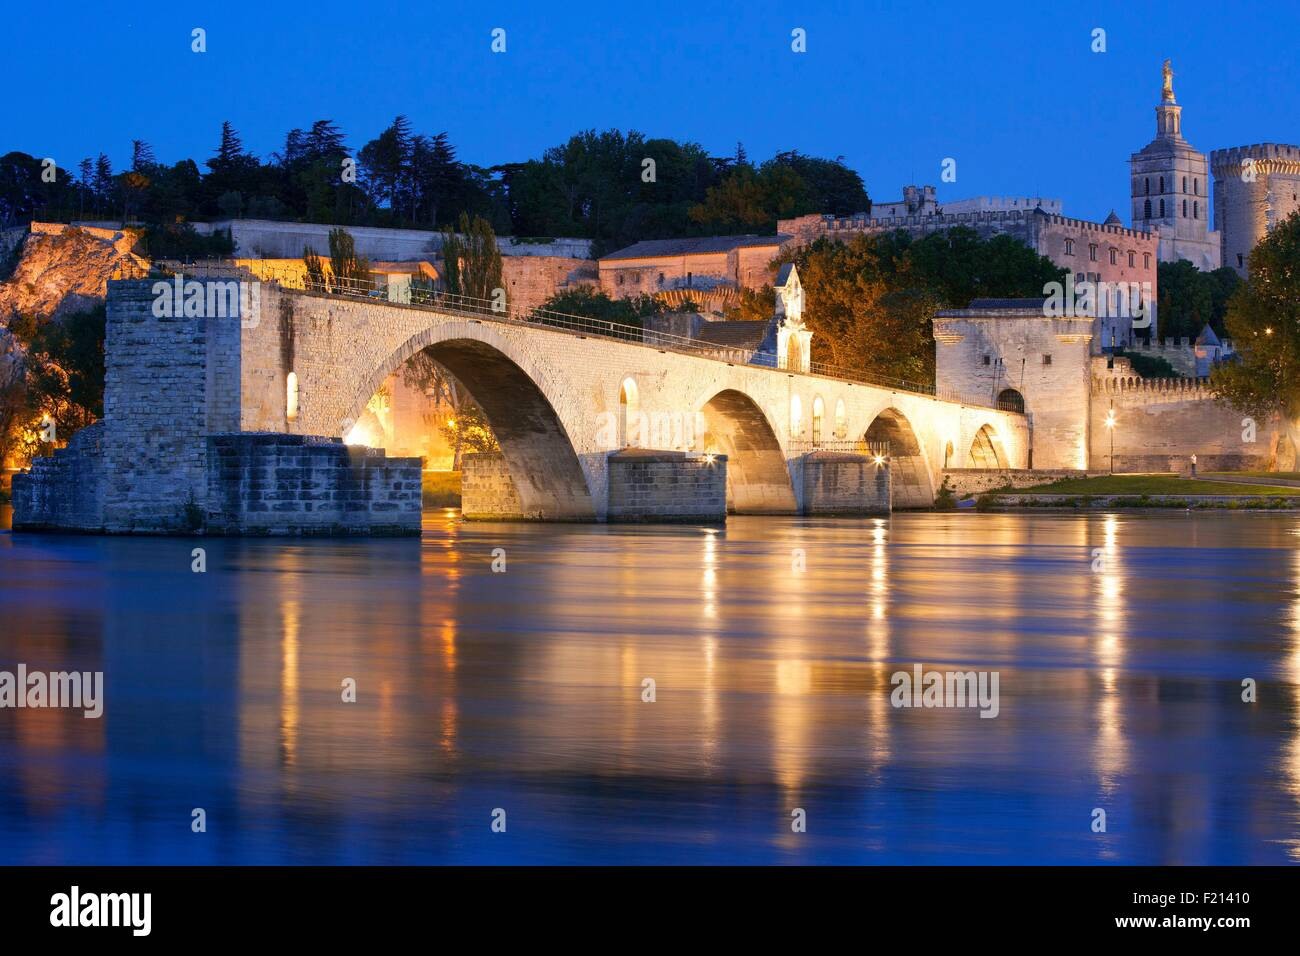 France, Vaucluse, Avignon, Saint Benezet Bridge (12th century) on the Rhone - Stock Image